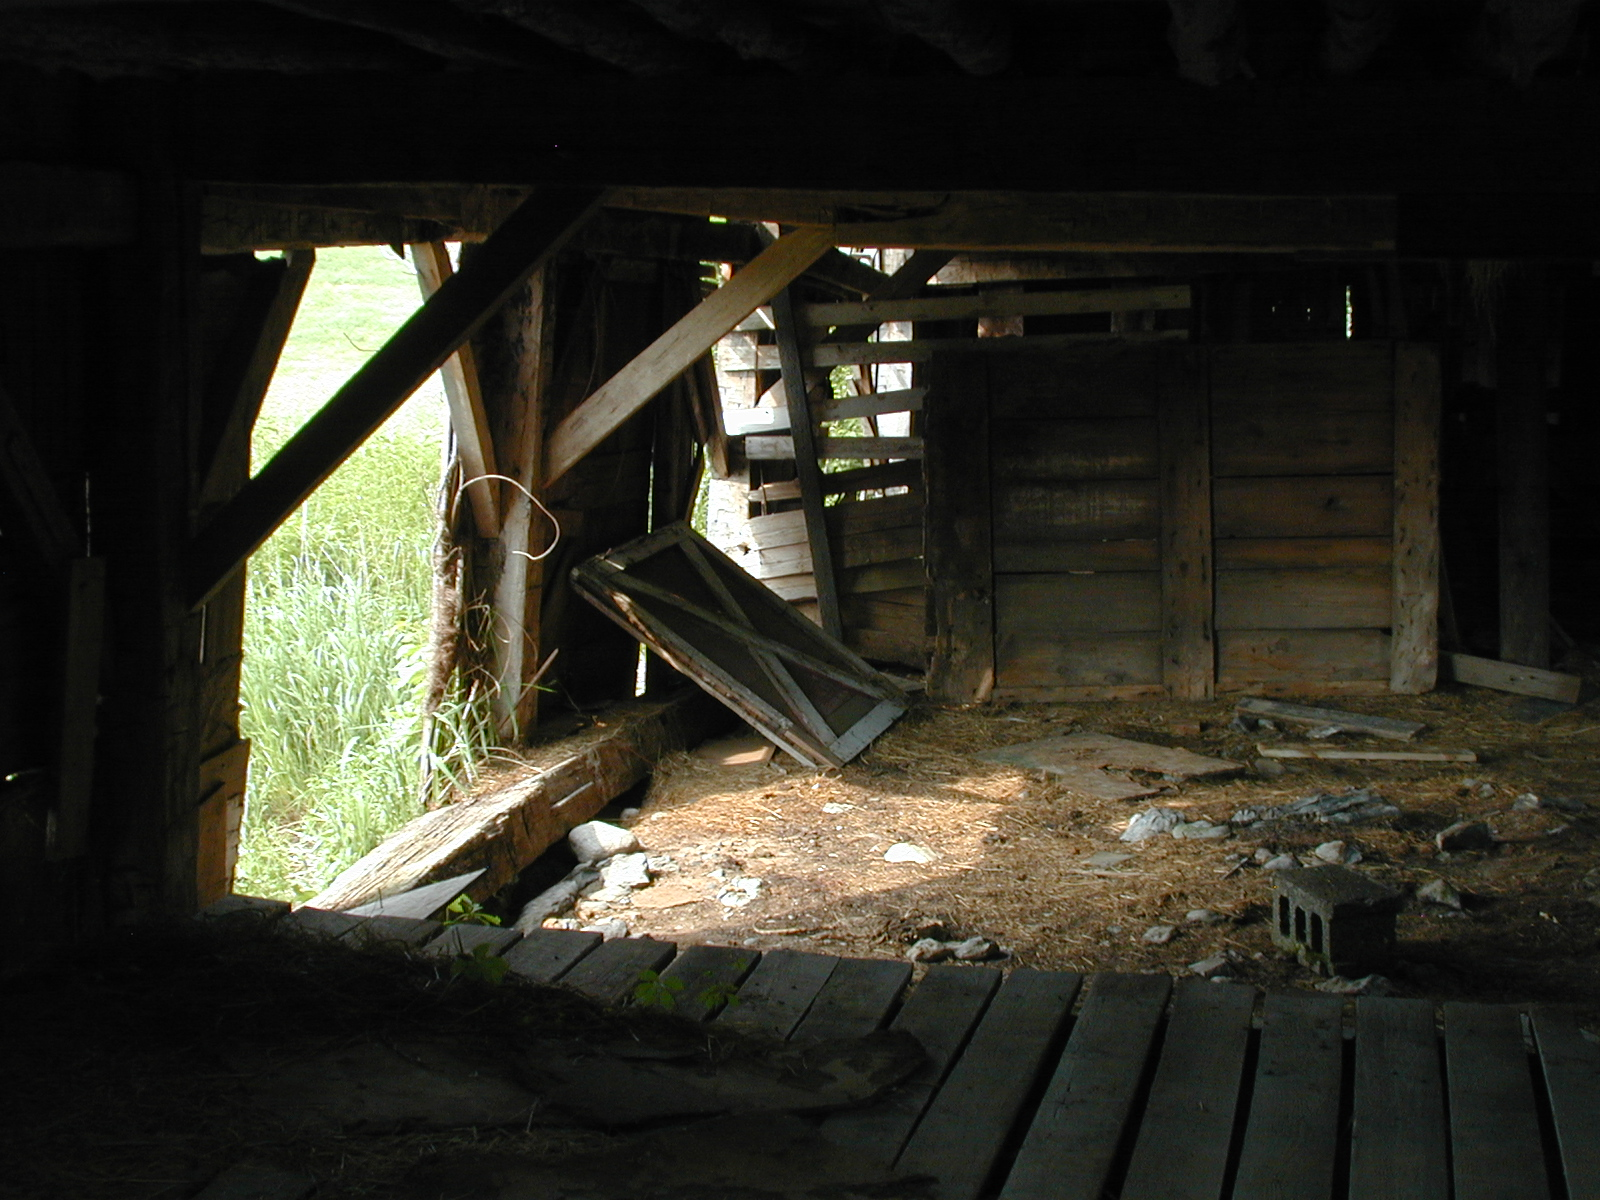 Third unknown house, barn interior